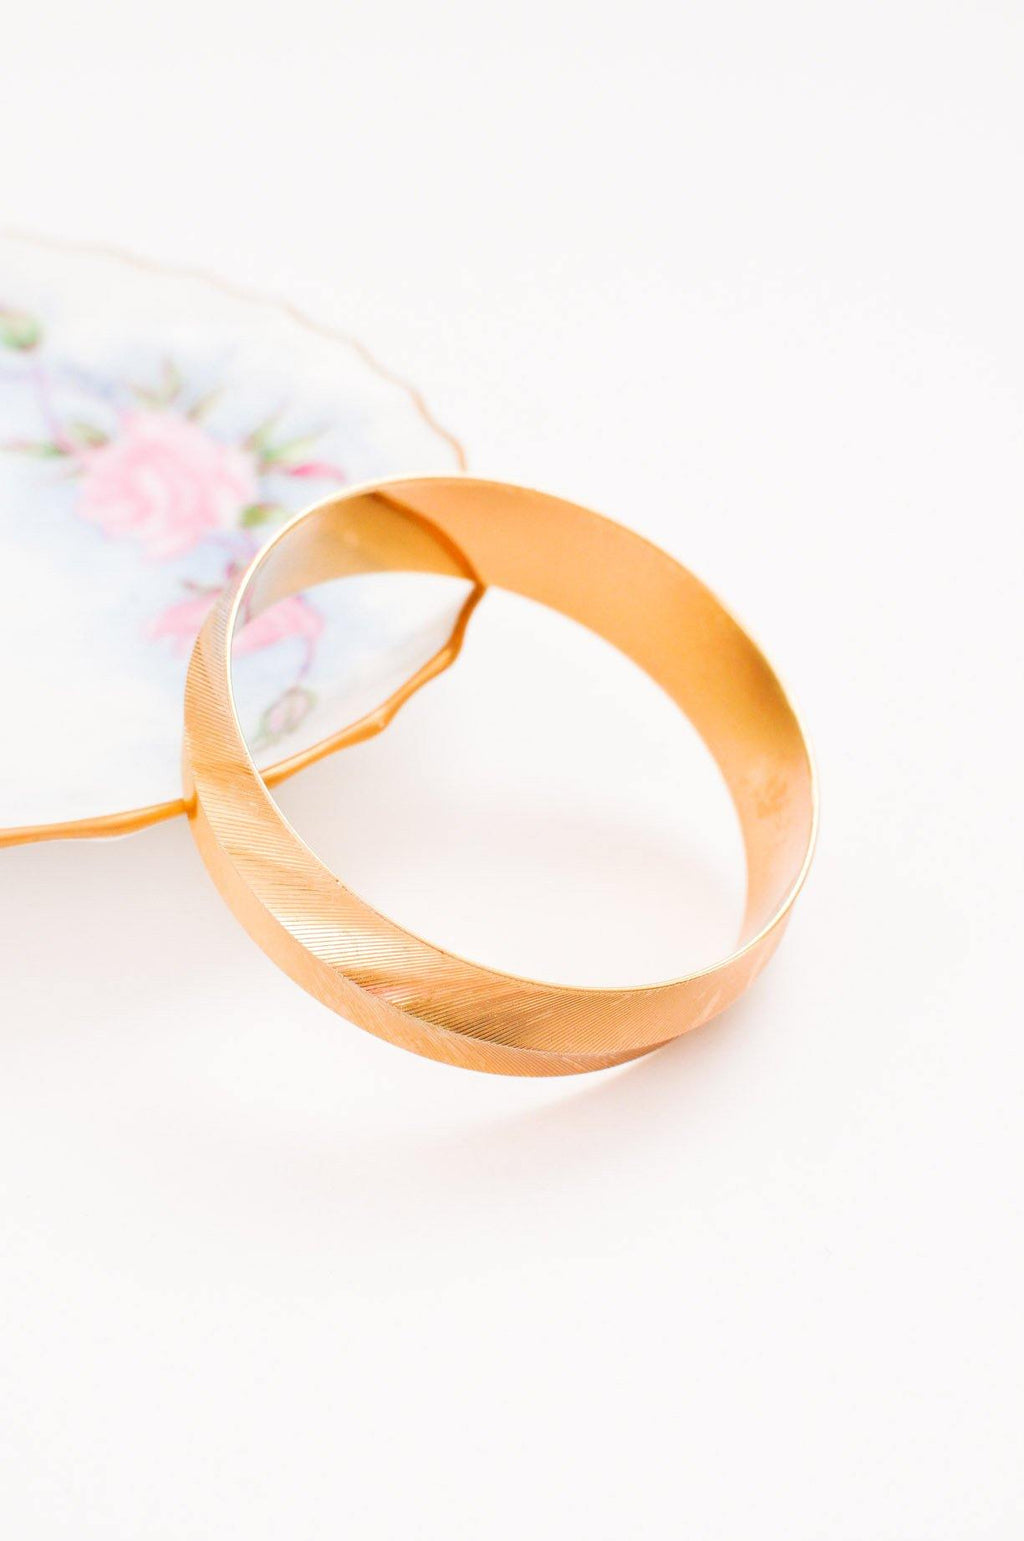 Etched Bangle Bracelet